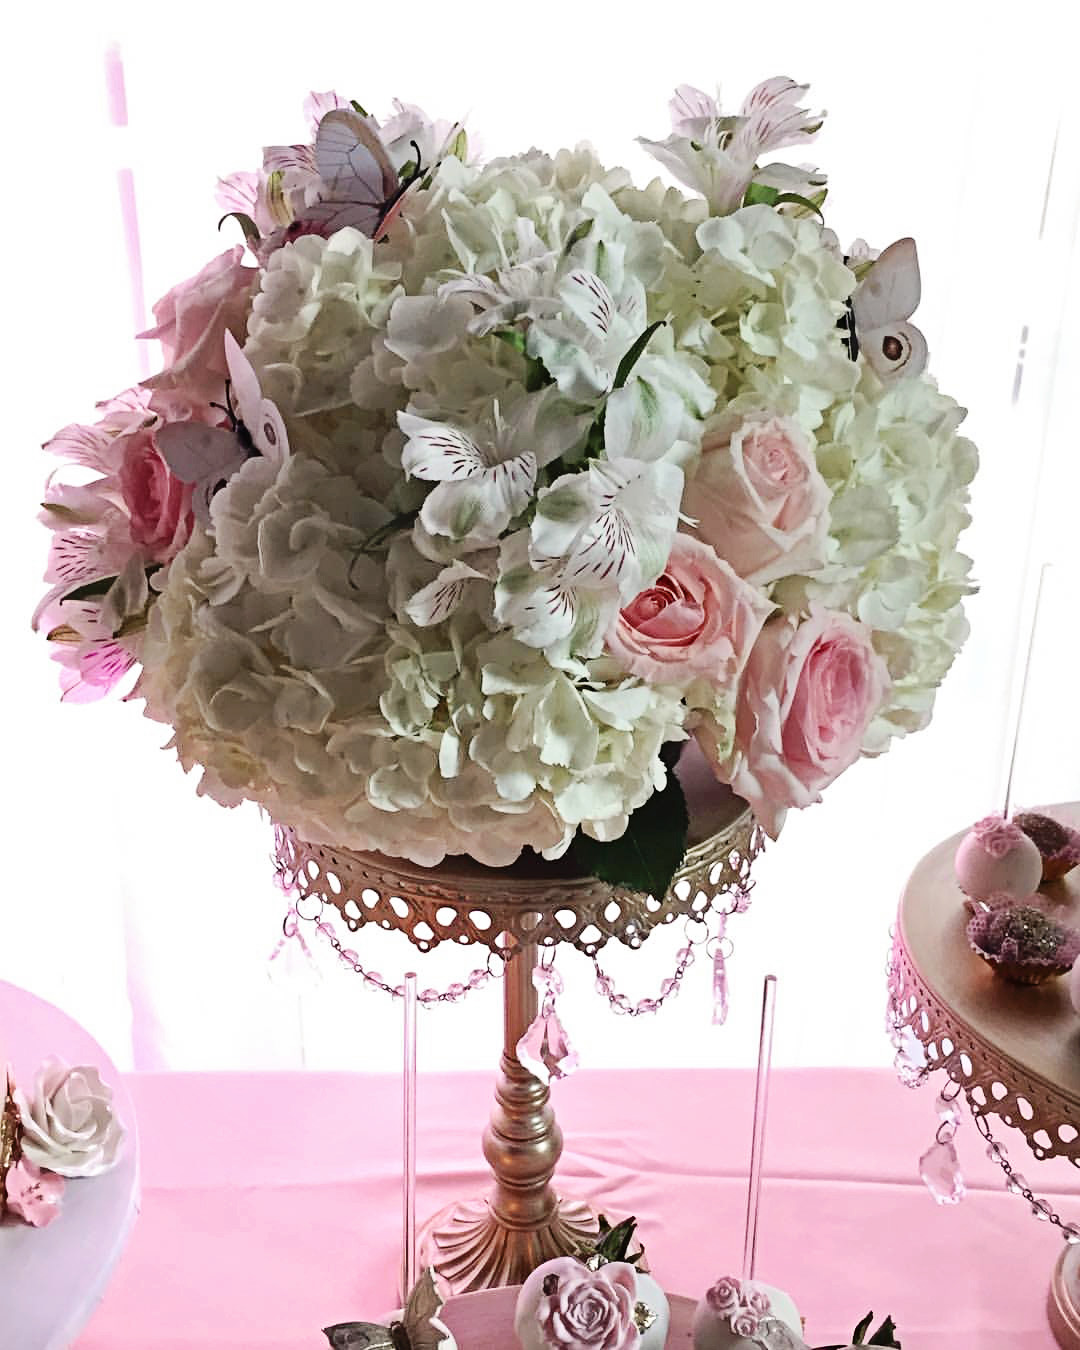 HiRES-flowers-cake-stand-galabashers.jpg